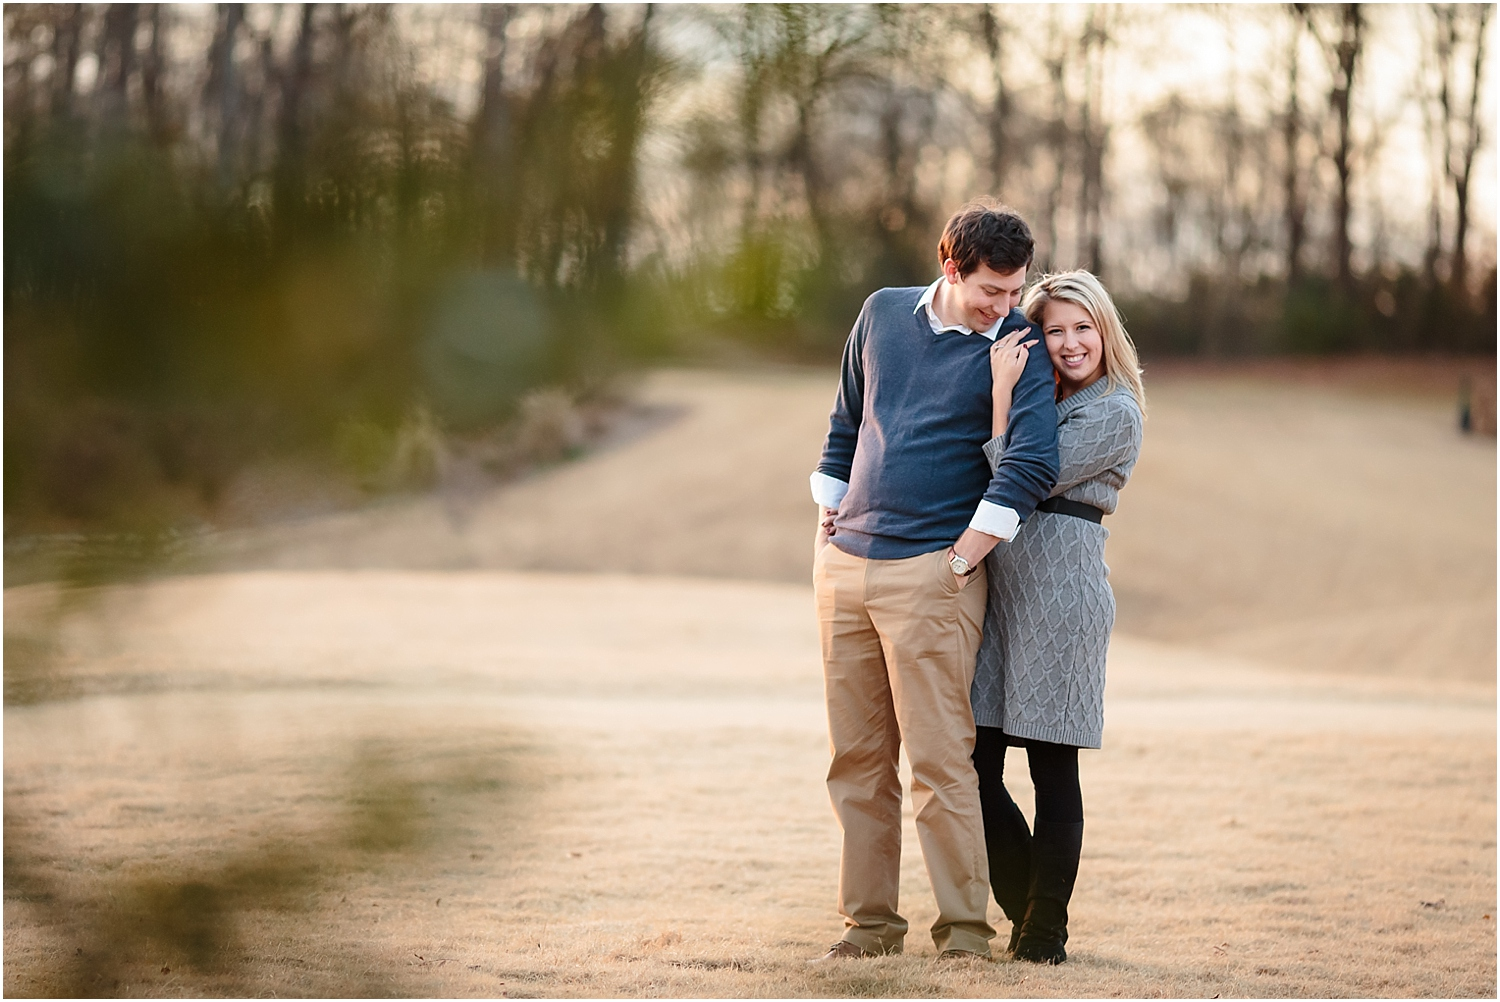 141207--0453clemson-engagement-shoot_blog.jpg